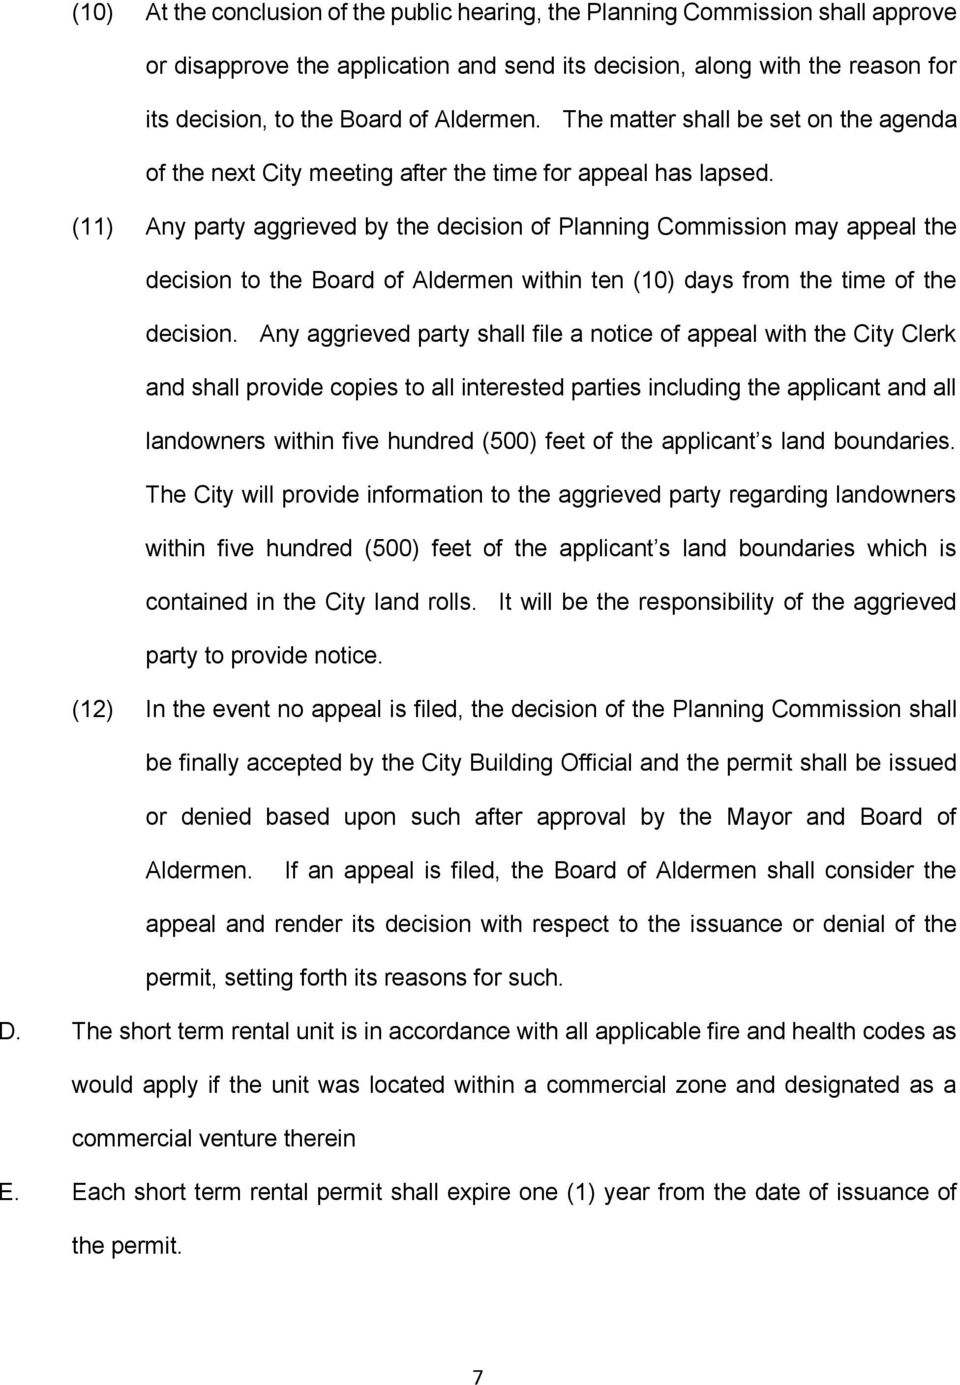 (11) Any party aggrieved by the decision of Planning Commission may appeal the decision to the Board of Aldermen within ten (10) days from the time of the decision.